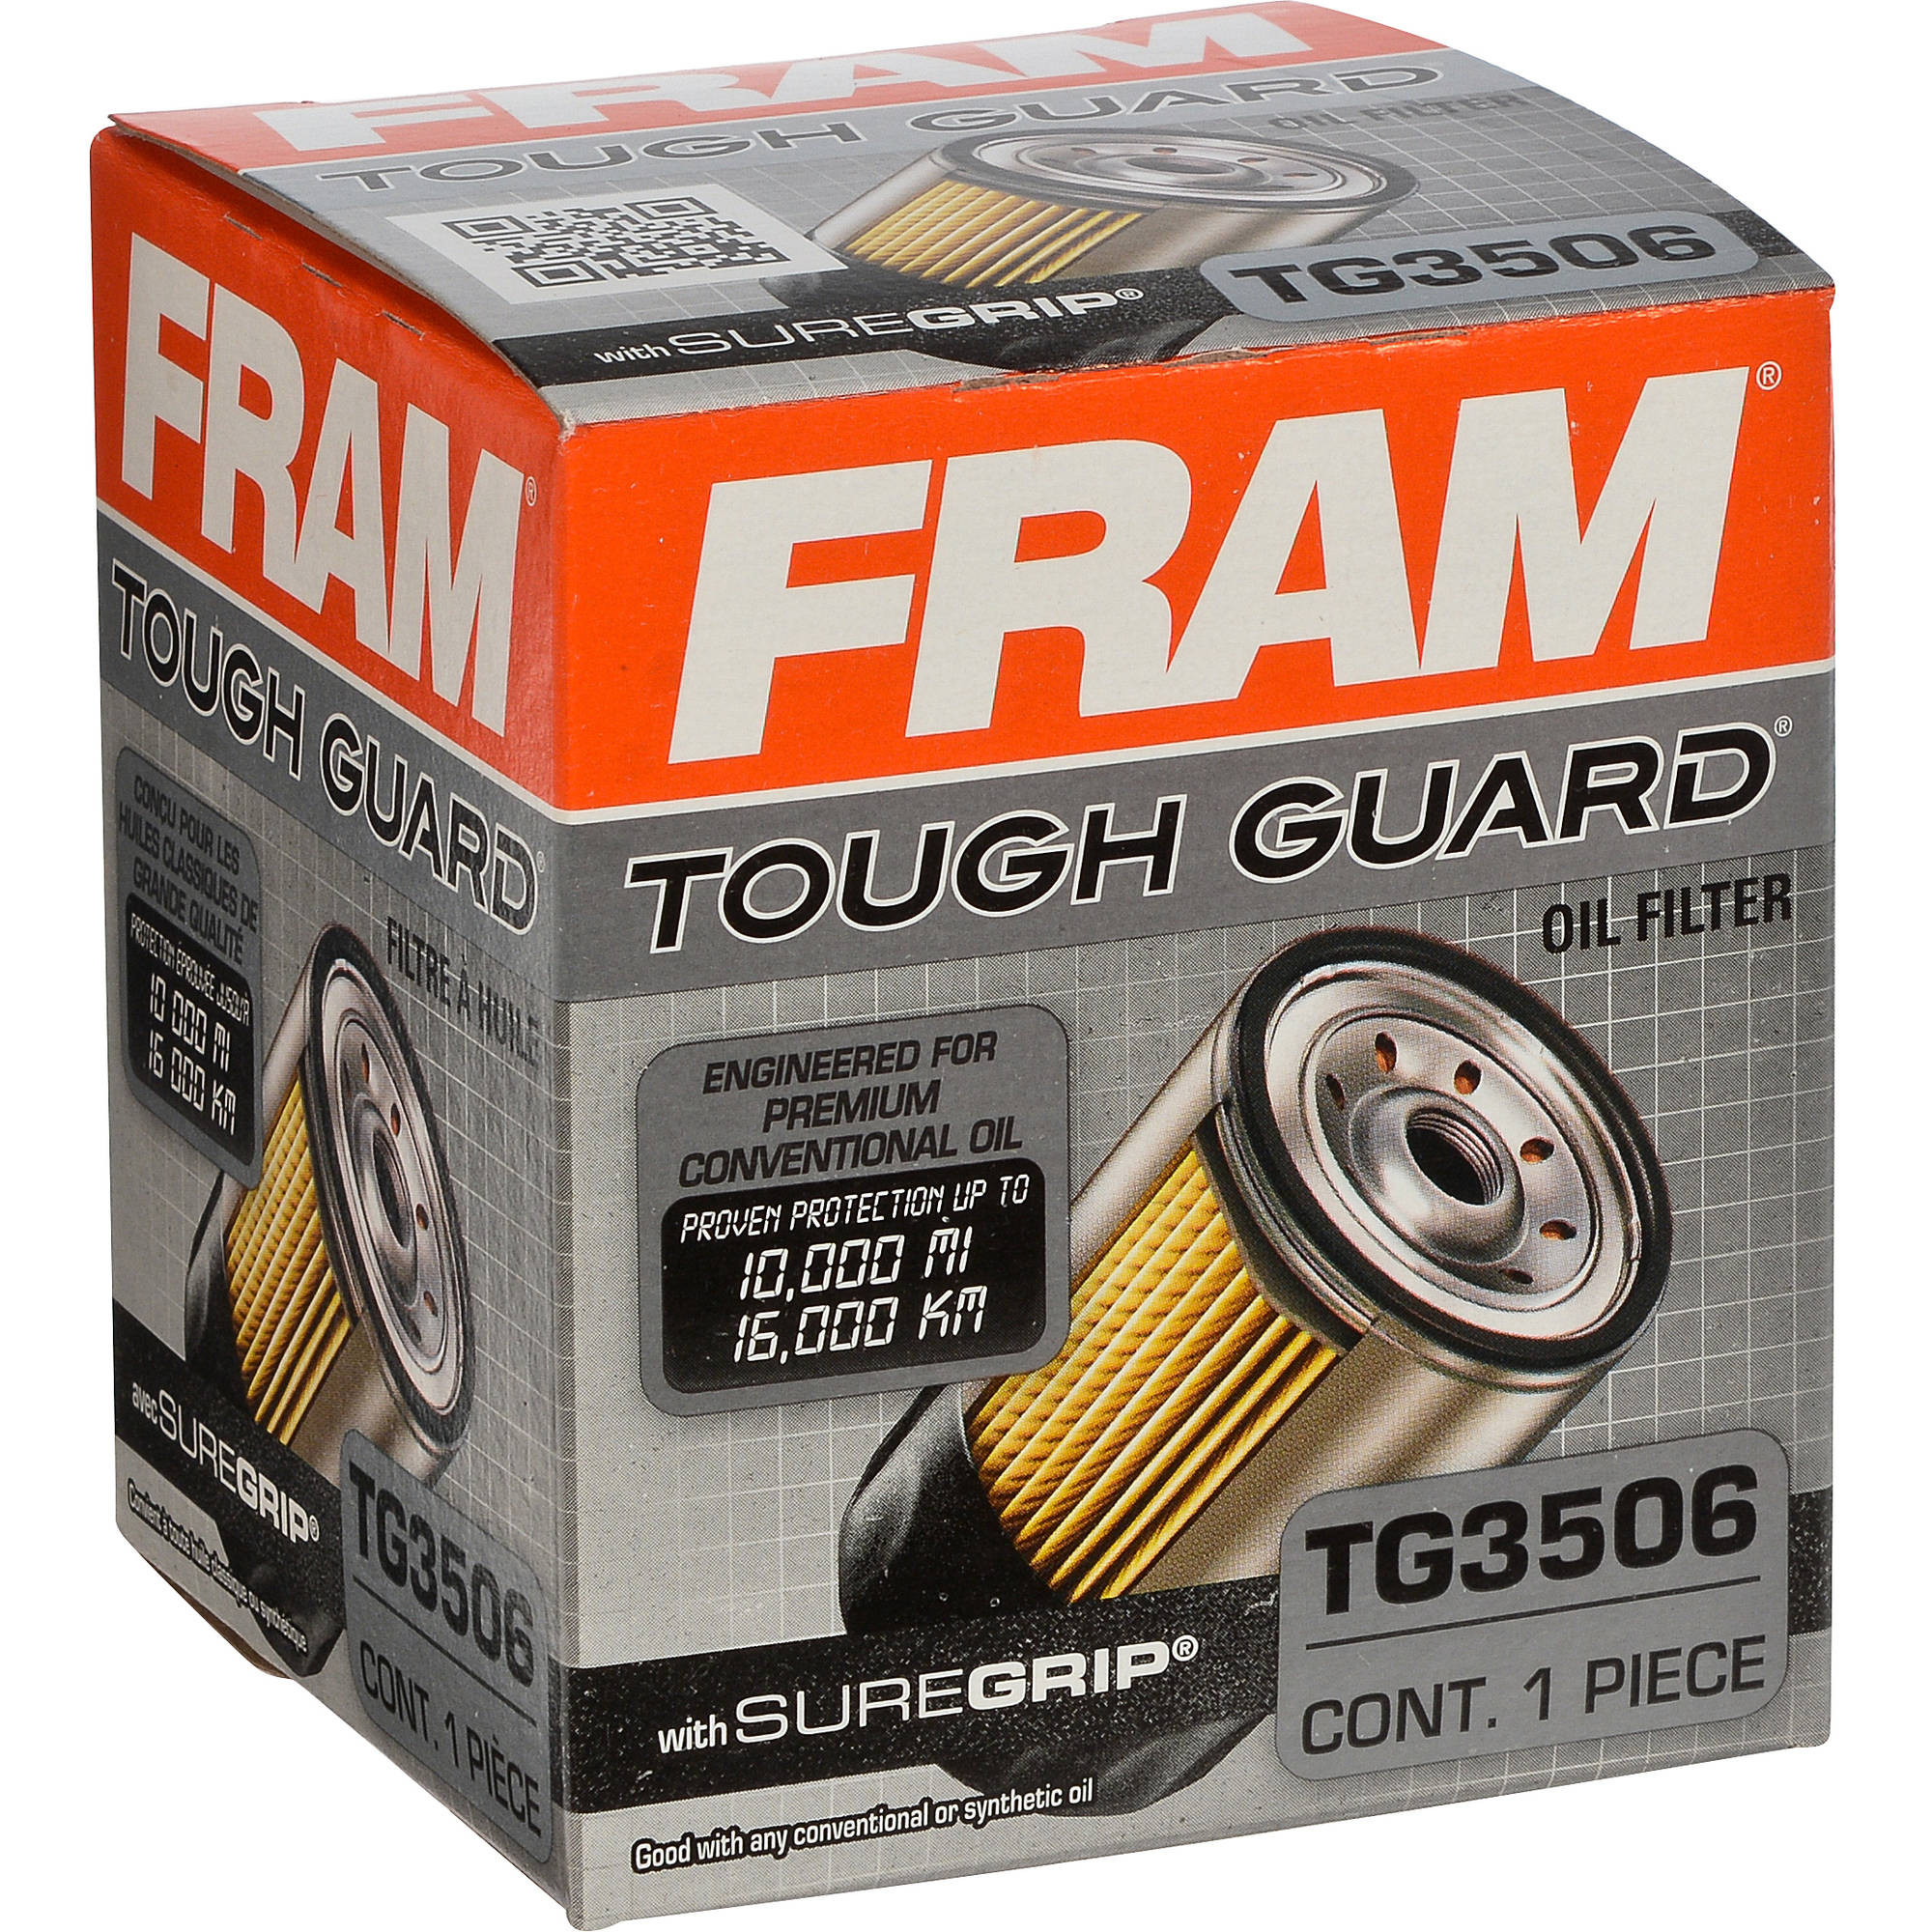 Walmart Oil Filter Finder >> FRAM Tough Guard Oil Filter, TG3506 - Walmart.com